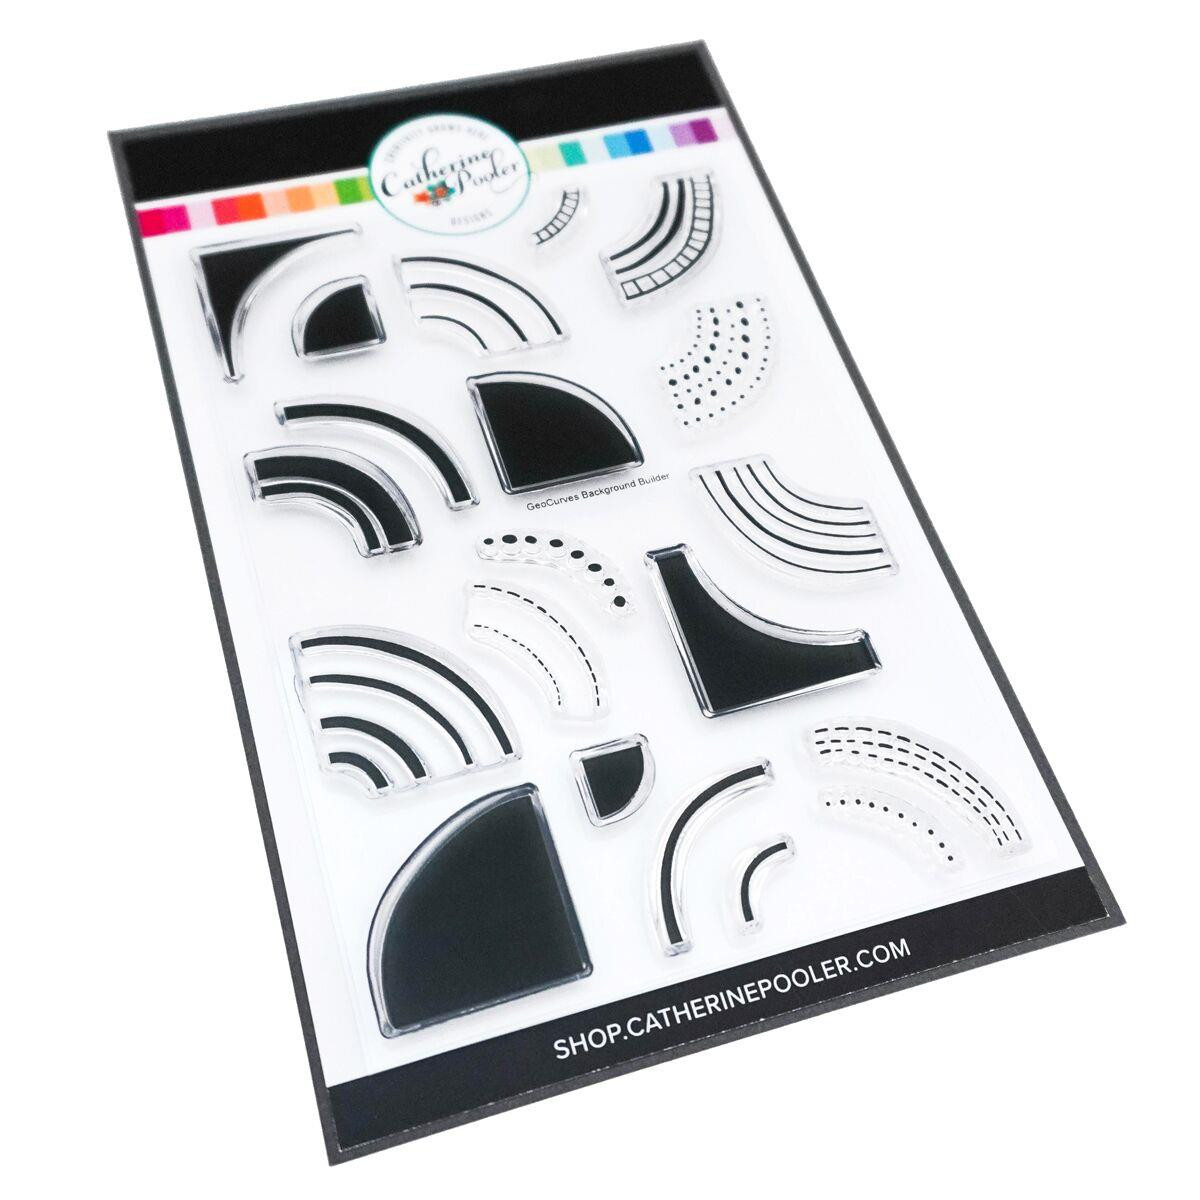 GeoCurves, Catherine Pooler Clear Stamps - 819447023974